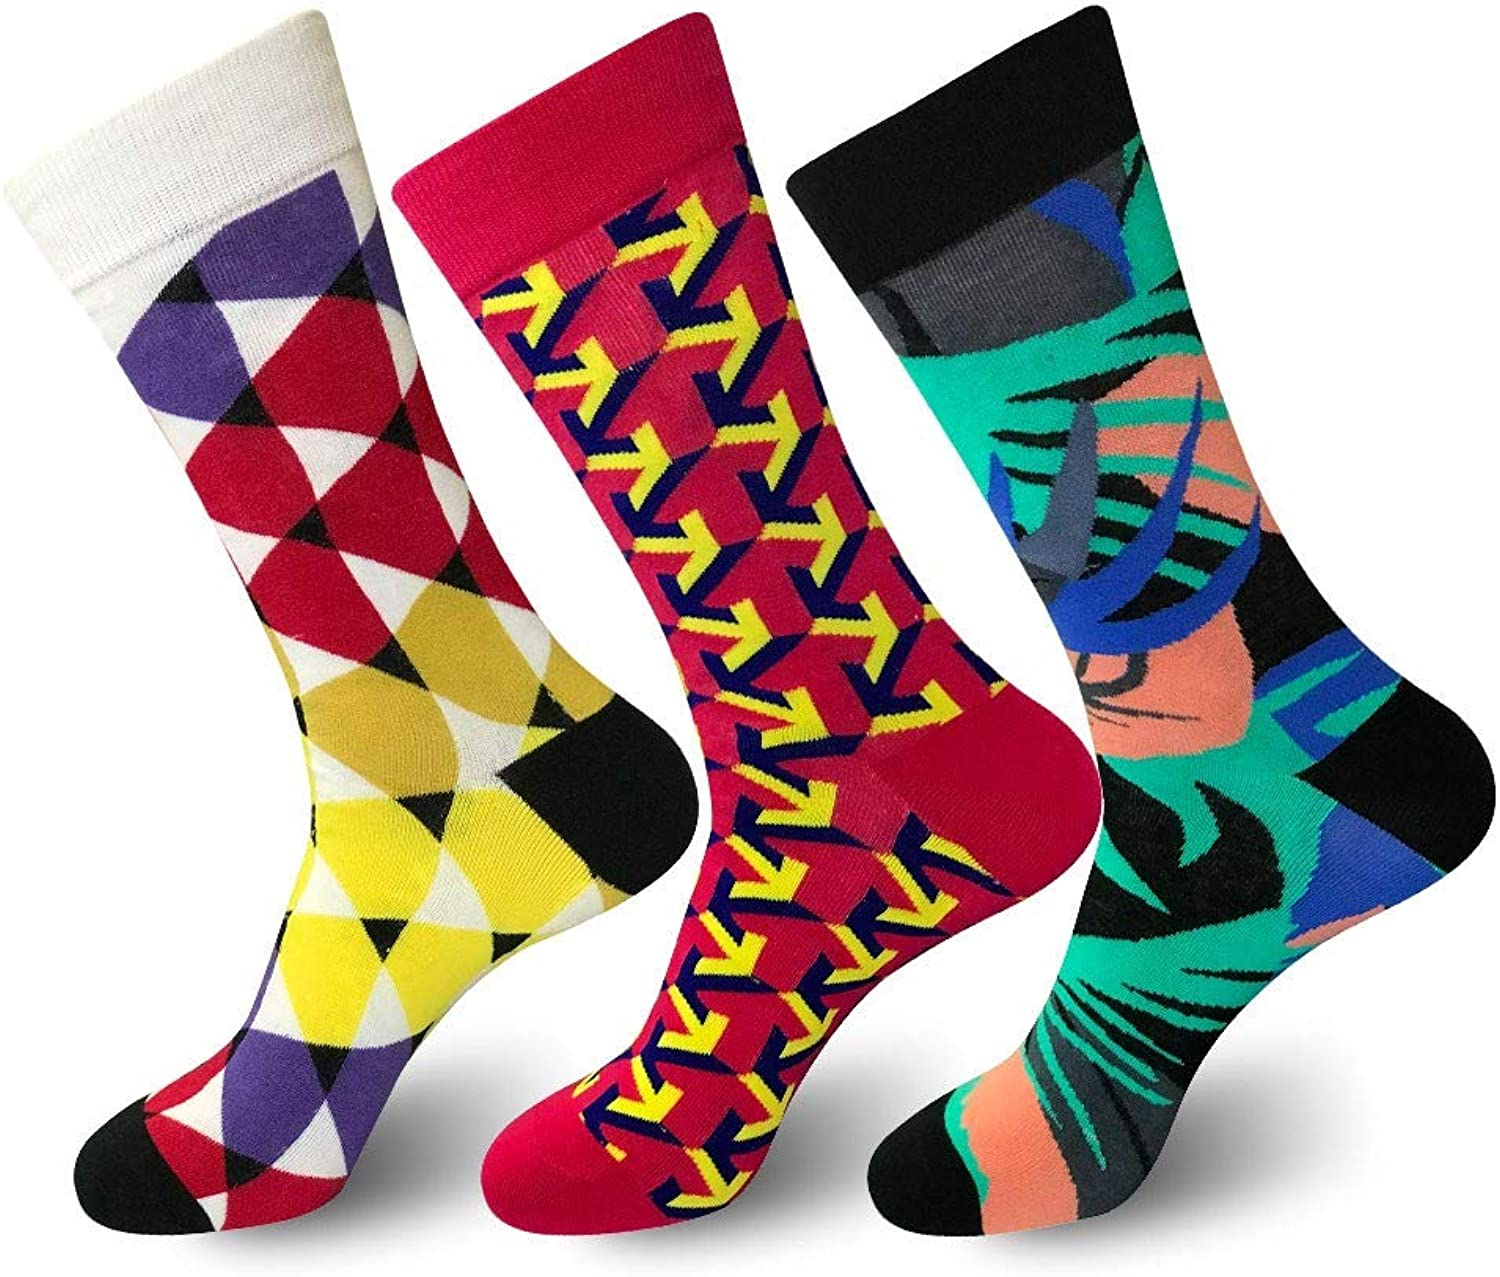 Hyf Socks 3 Pairs Of Autumn And Winter New Men'S Socks Personality In The High Tide Socks